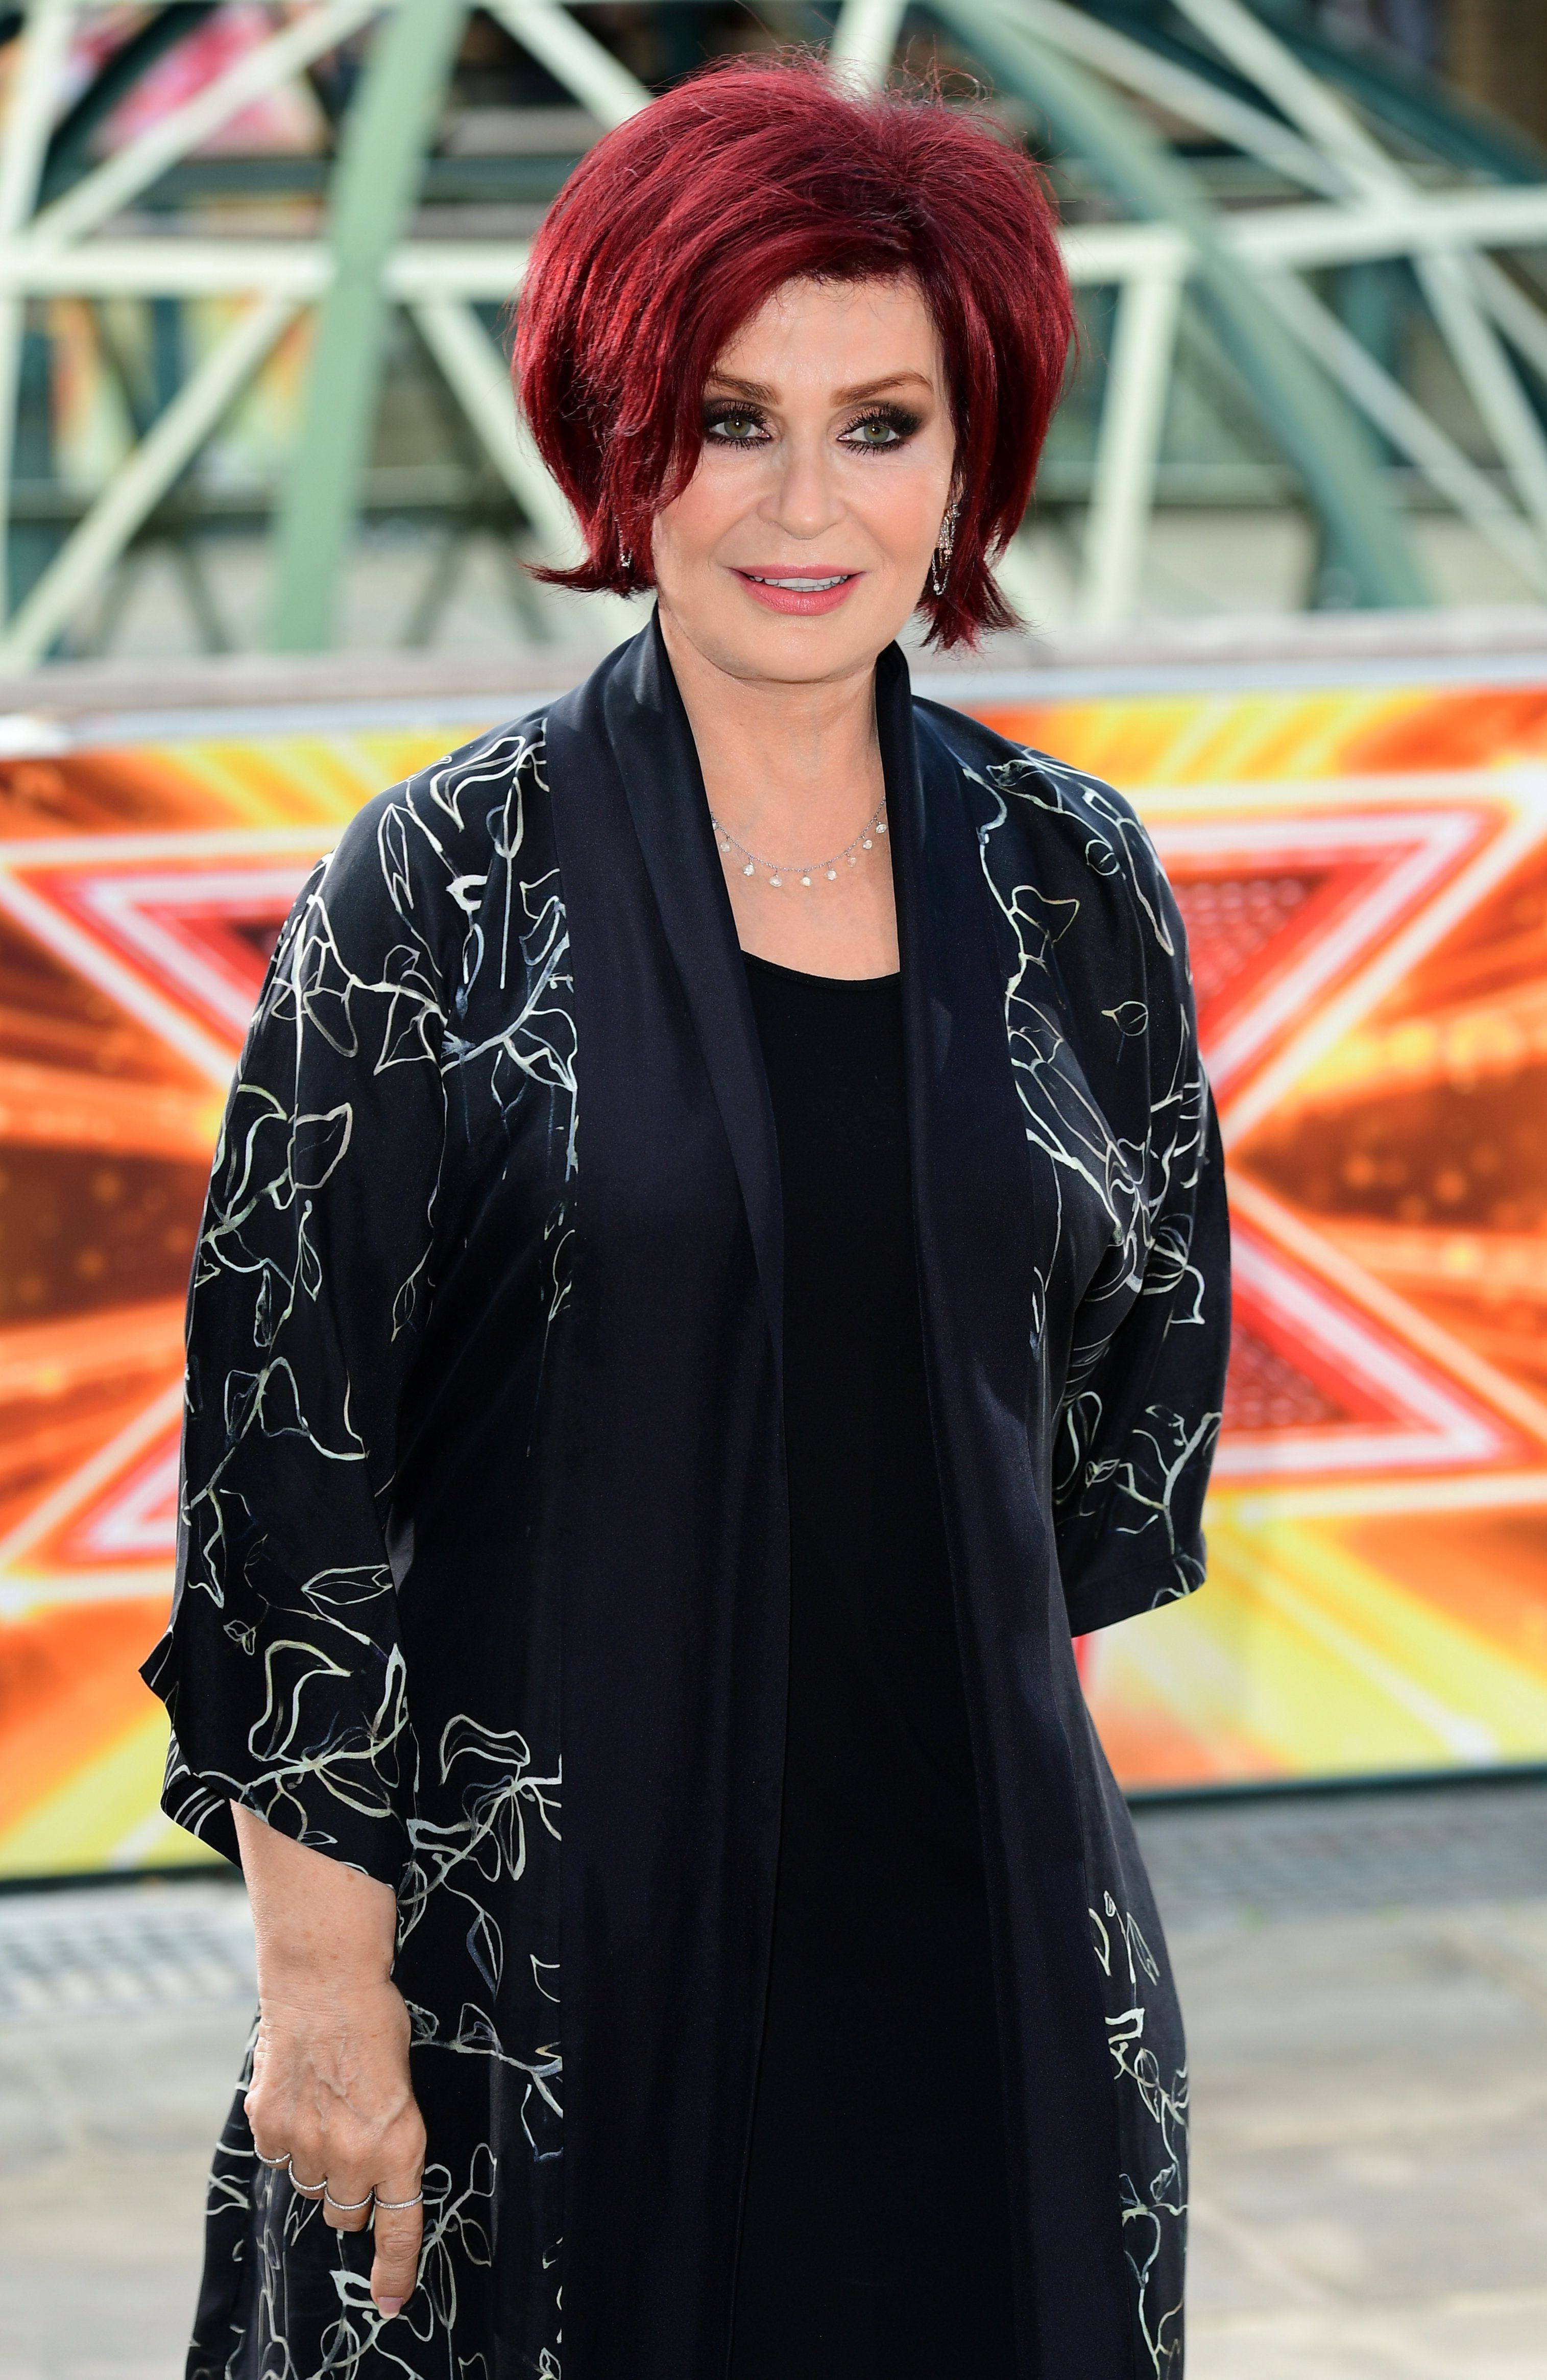 Sharon Osbourne Blasts 'X Factor' And Simon Cowell, Ahead Of Her Return To The Judging